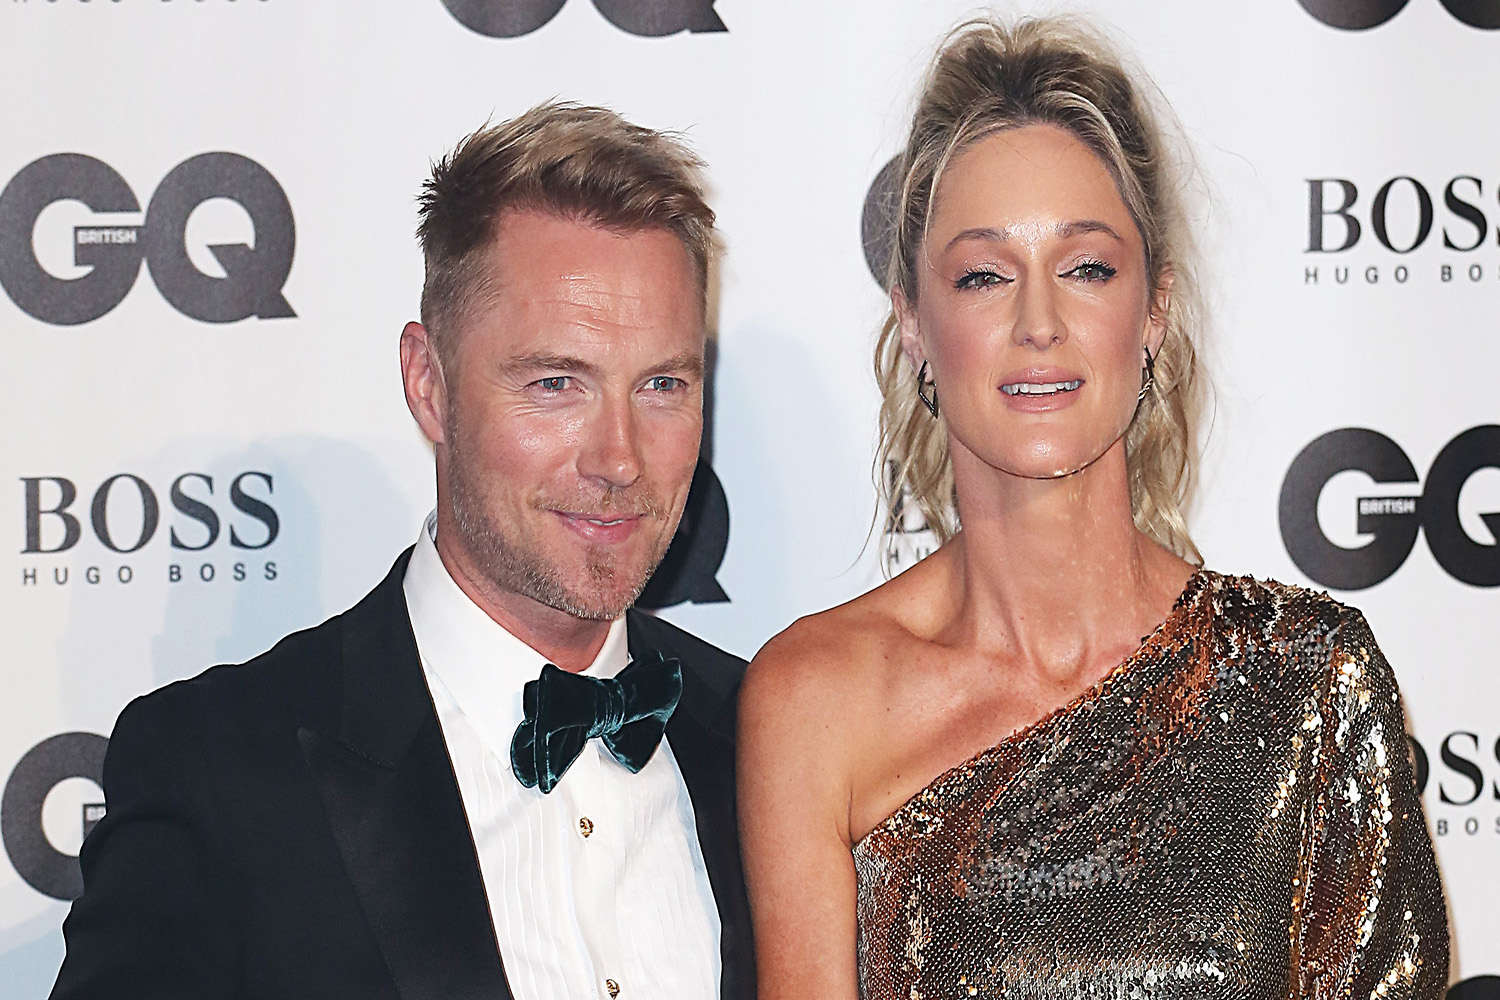 Ronan Keating's wife melts hearts as she shares new photo of newborn daughter